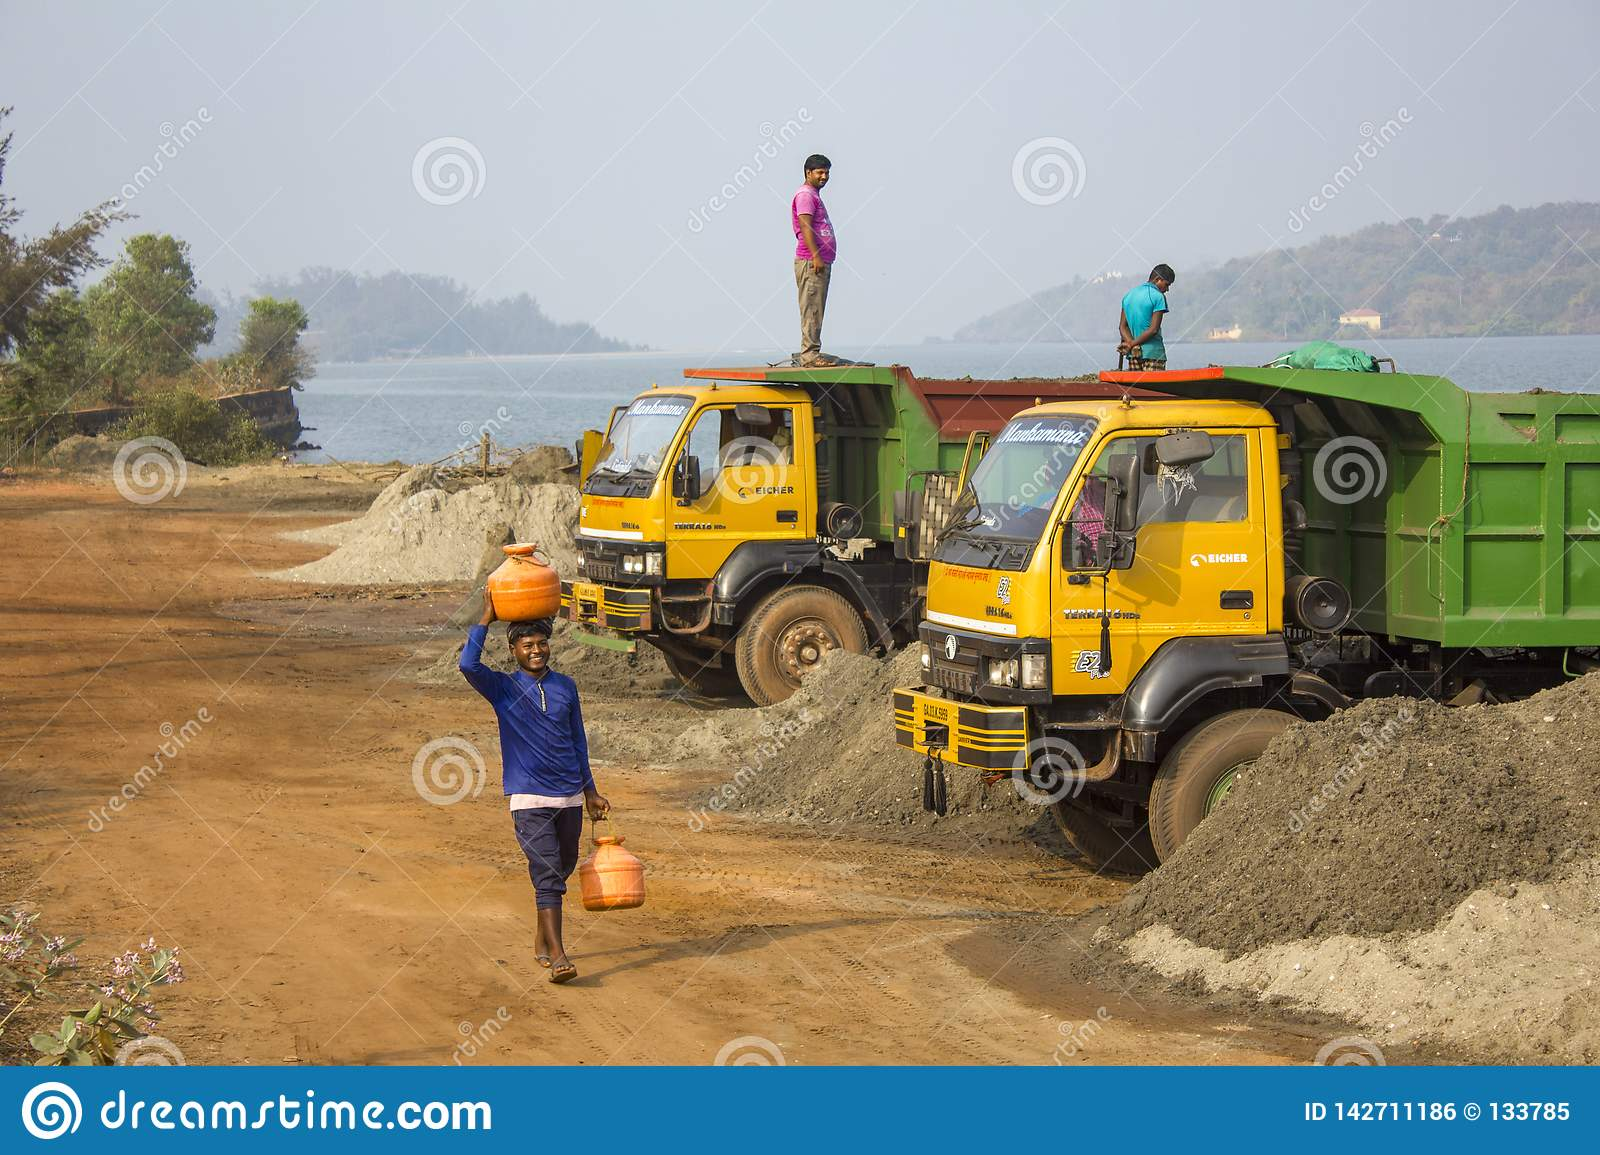 Indian young man carries a barrel of water on his head against the background of yellow trucks